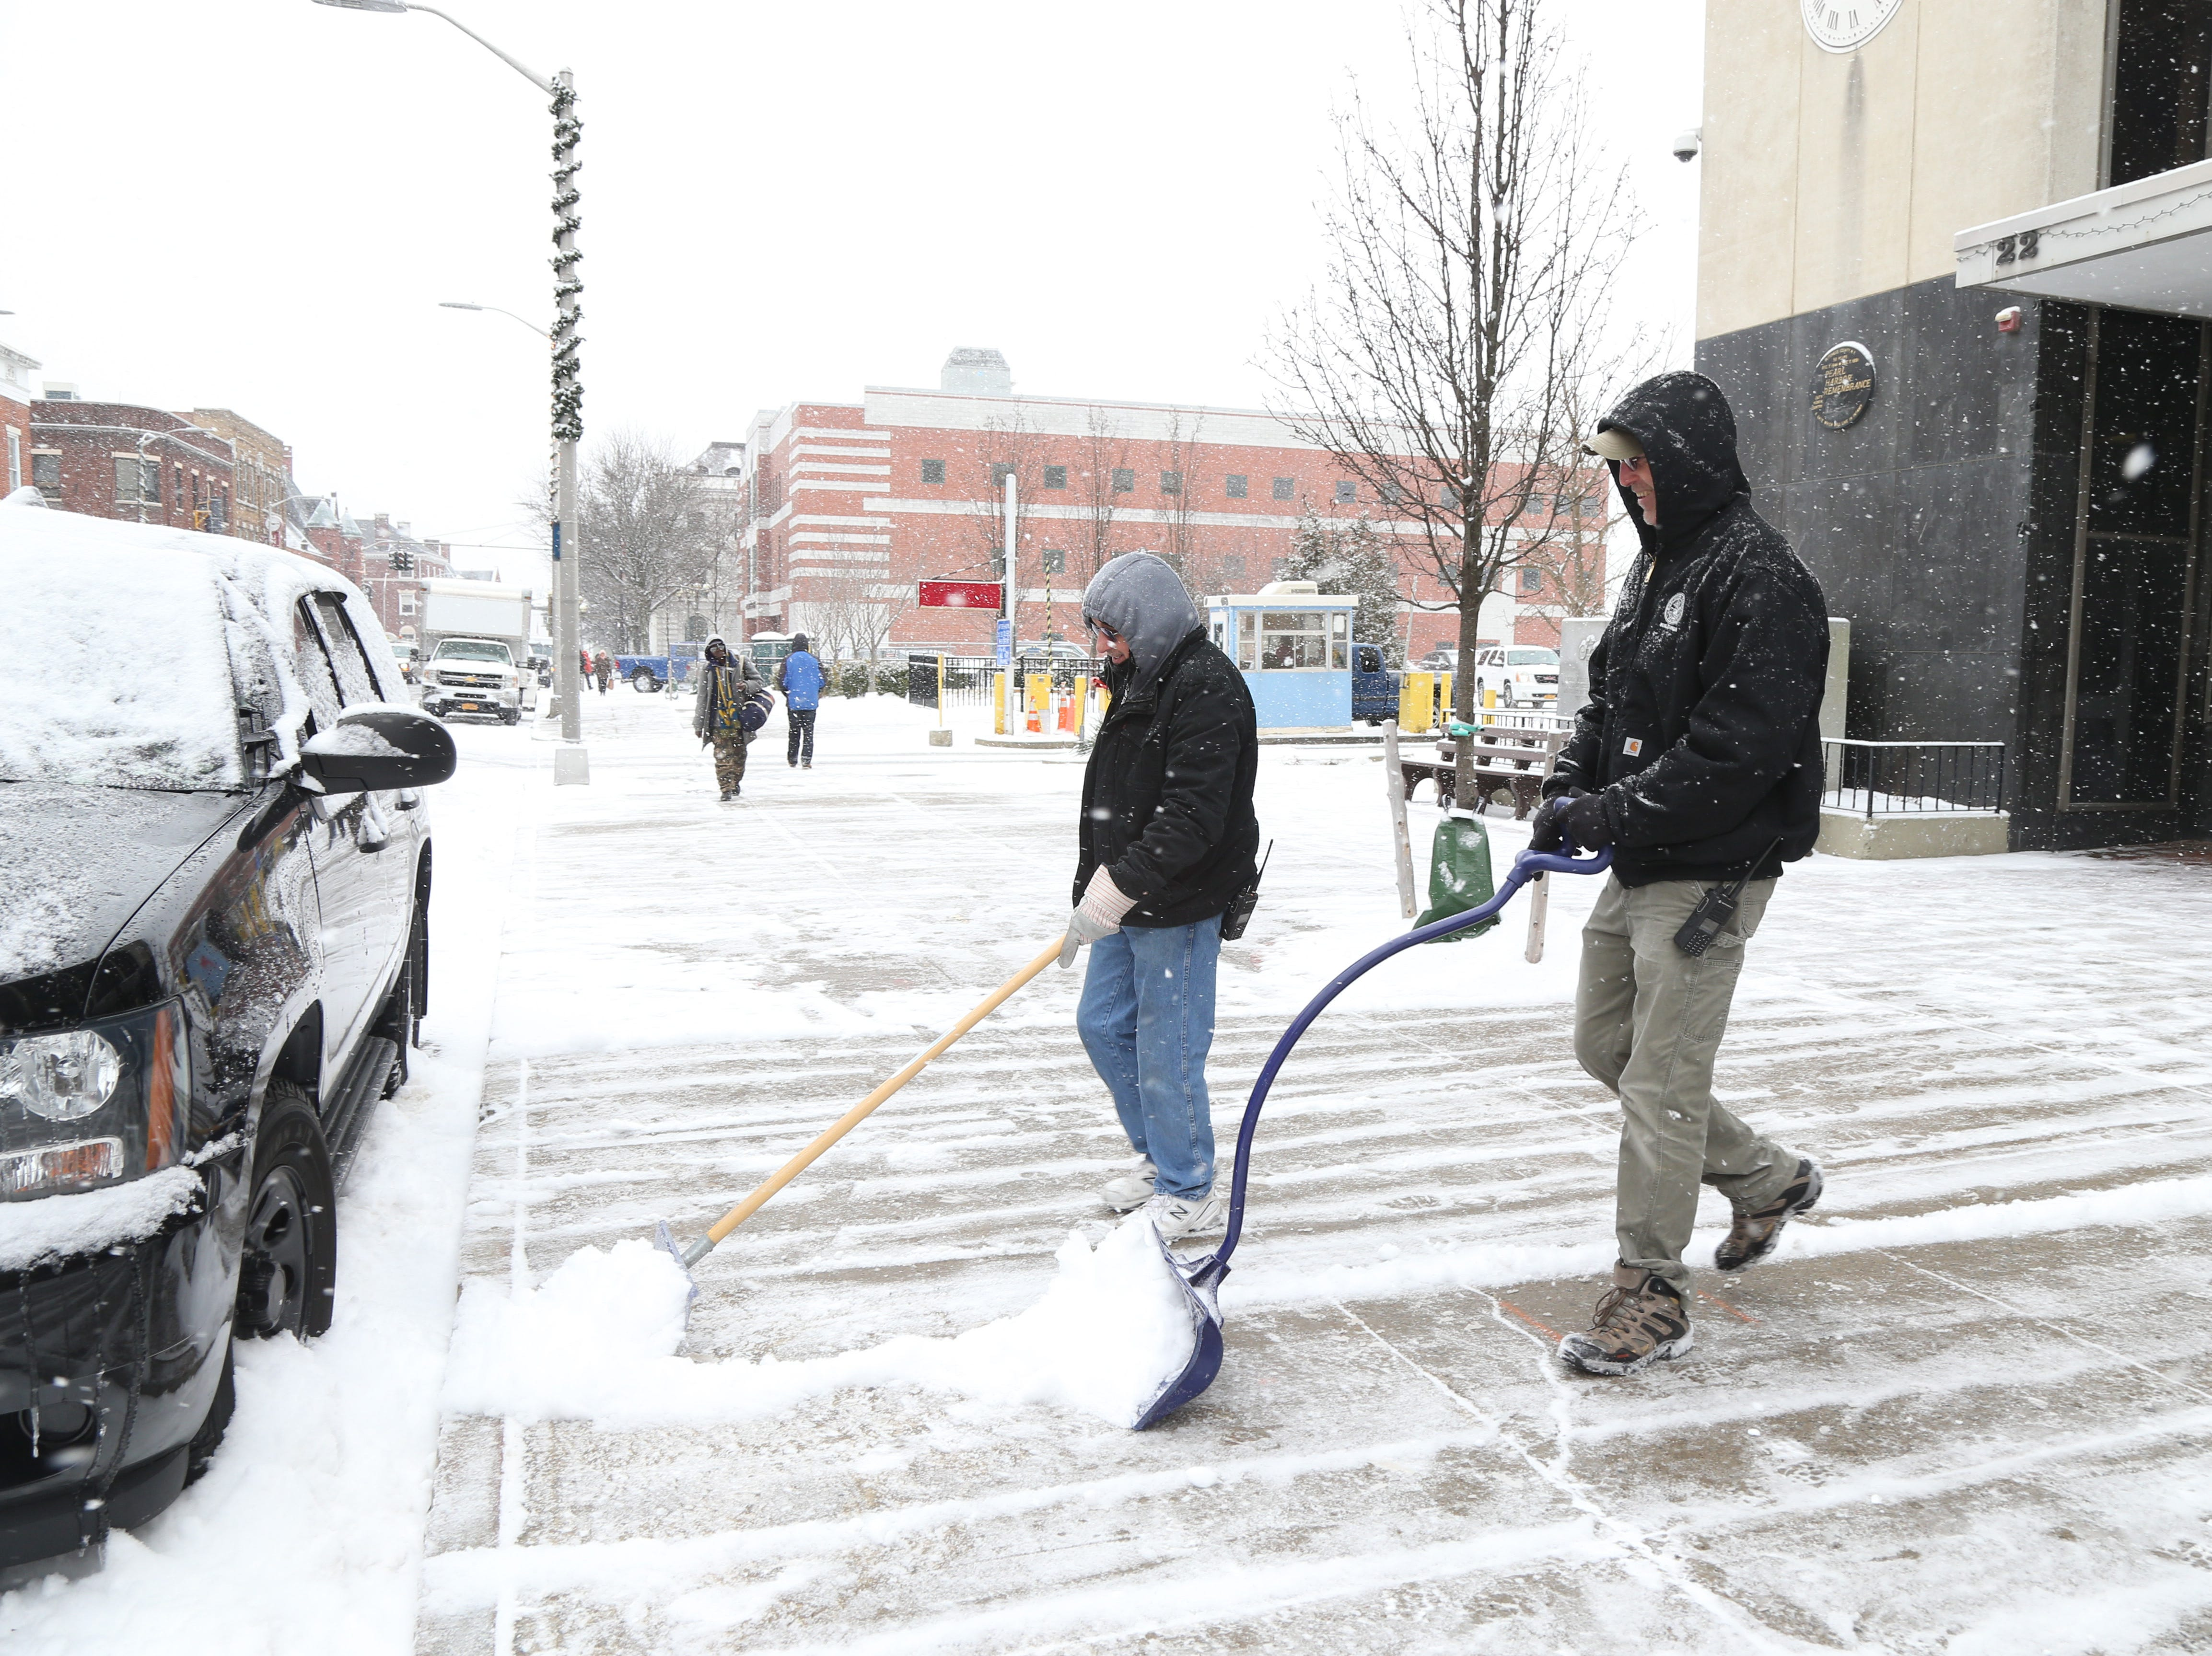 Dutchess County DPW workers, from left, Bernard Murtha and Matt Moran clear the sidewalk outside the Dutchess County Office Building on Market Street in the City of Poughkeepsie on January 29, 2019.